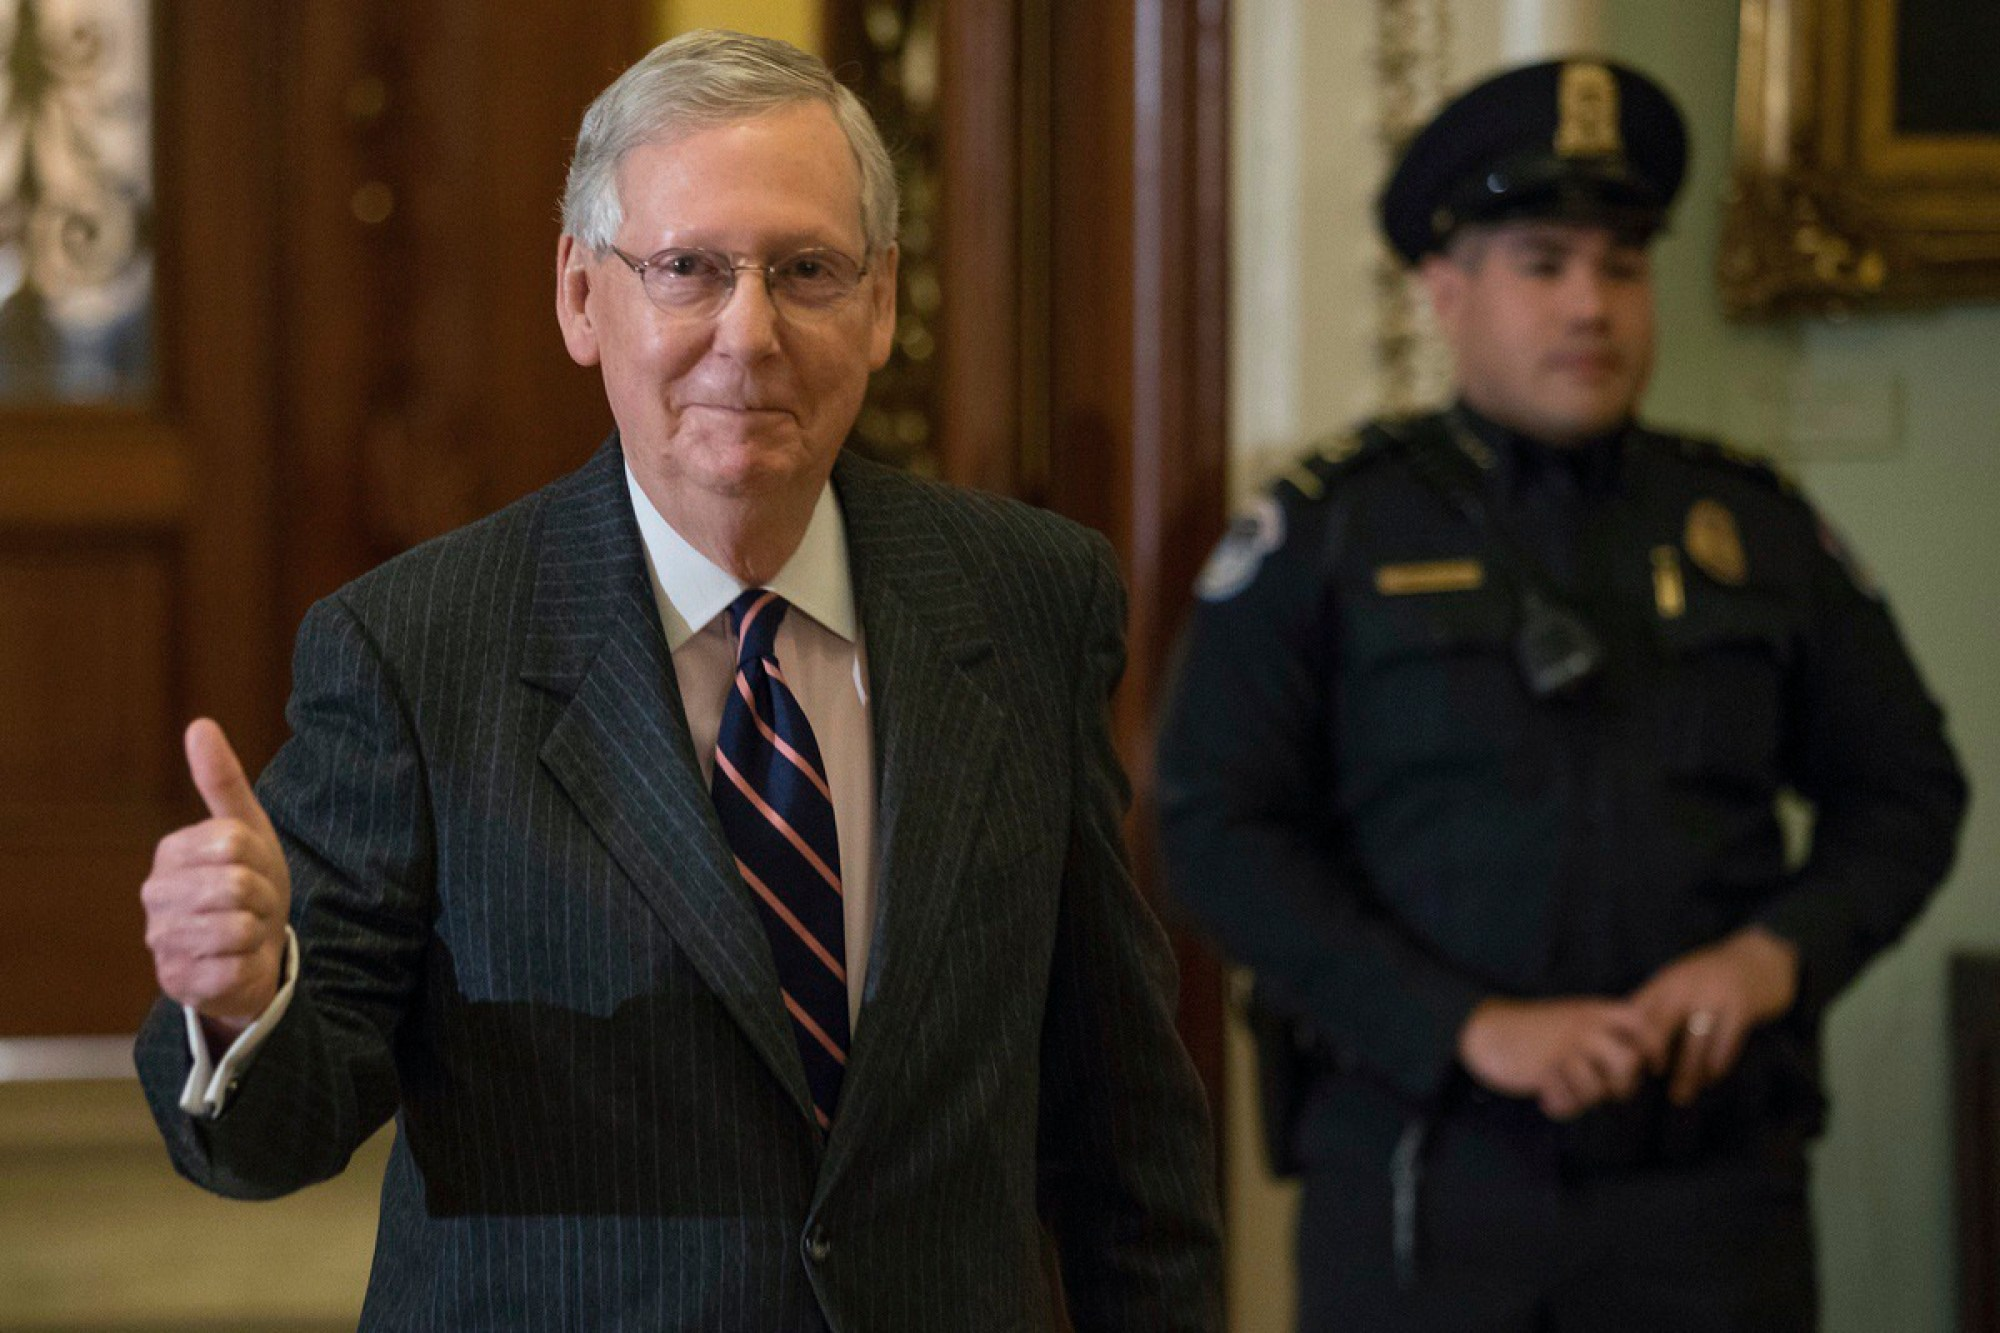 Senate Majority Leader Mitch McConnell of Ky. gives members of the media a thumbs up as he leaves the Senate chamber on Capitol Hill, in Washington, Tuesday, Feb. 7, 2017. (AP Photo/Andrew Harnik)